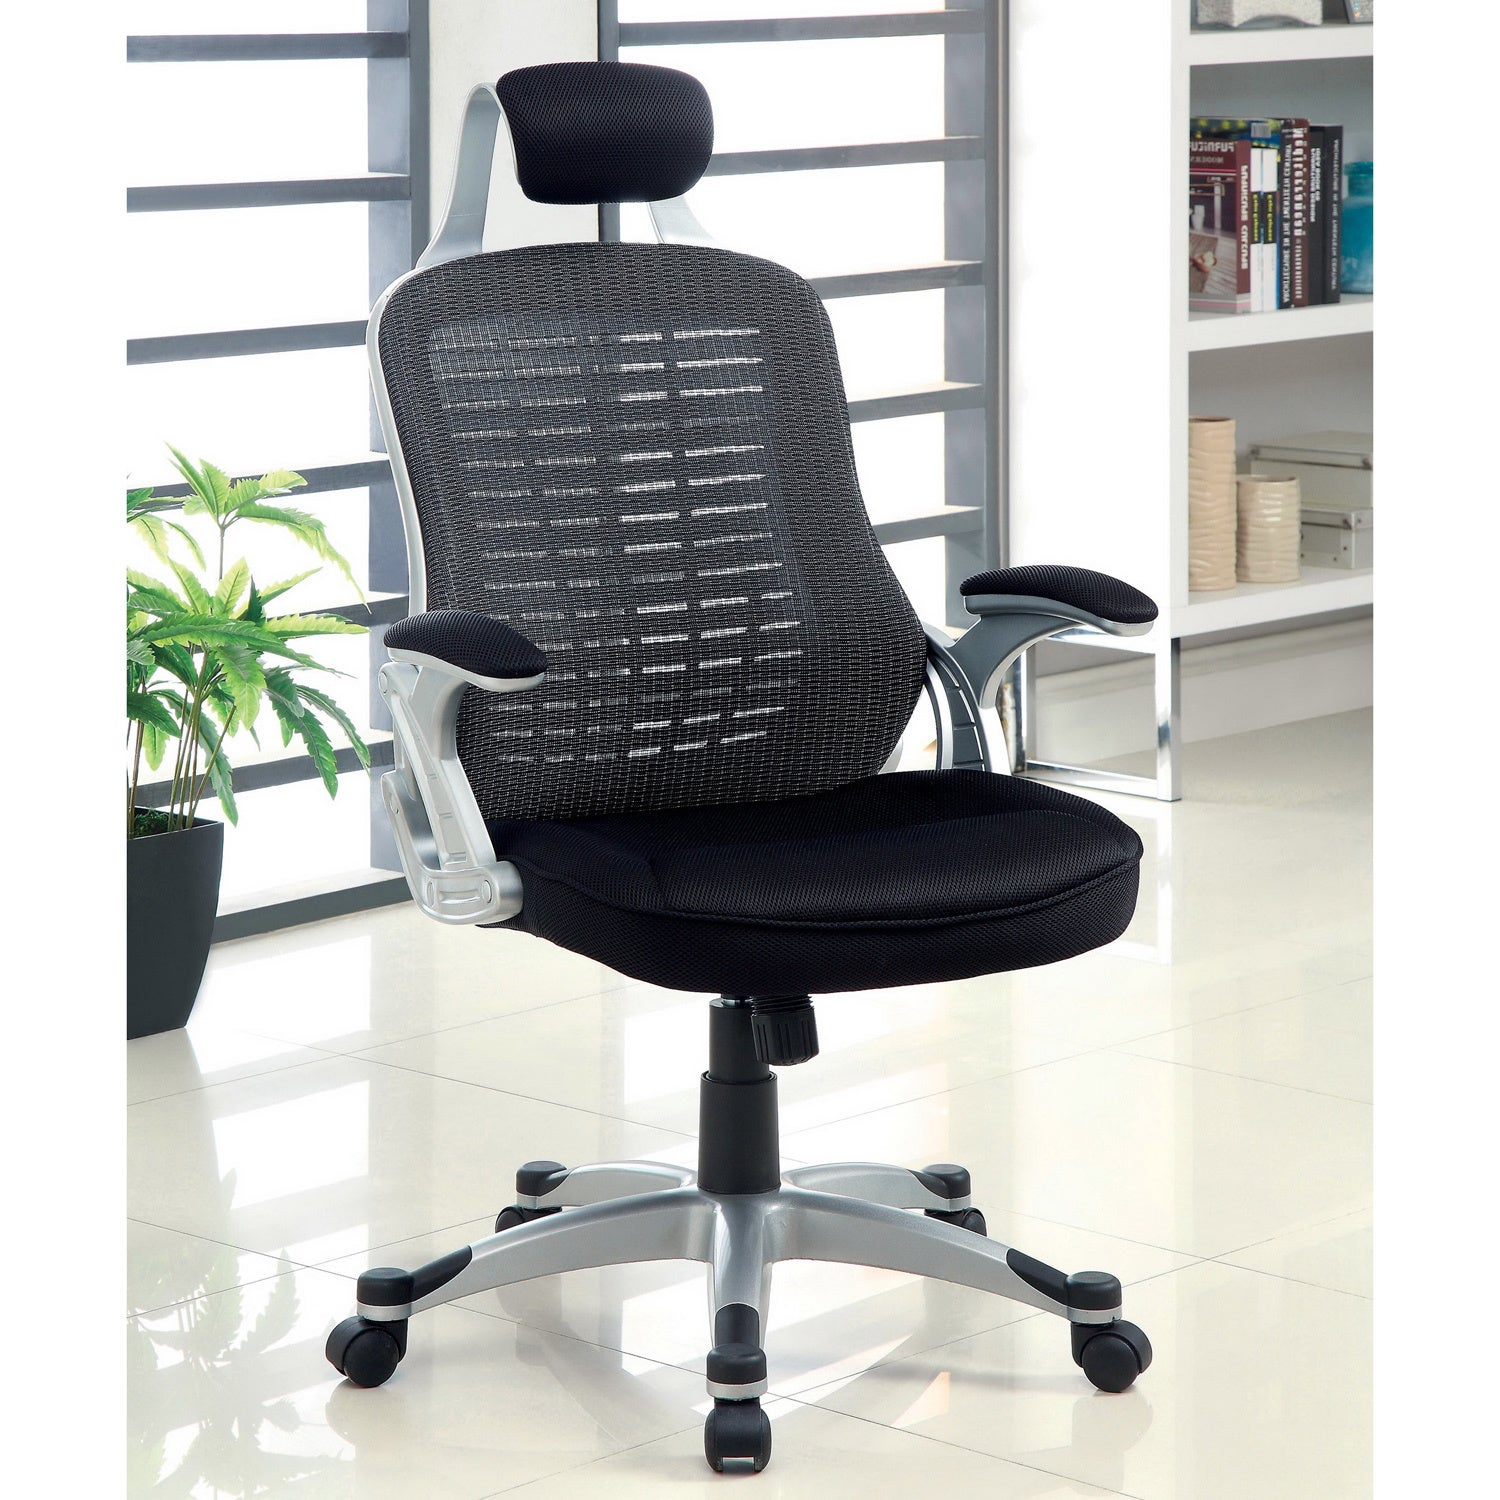 Furniture of America Cresta Pneumatic Height Adjustable Mesh Executive Office Chair at Sears.com